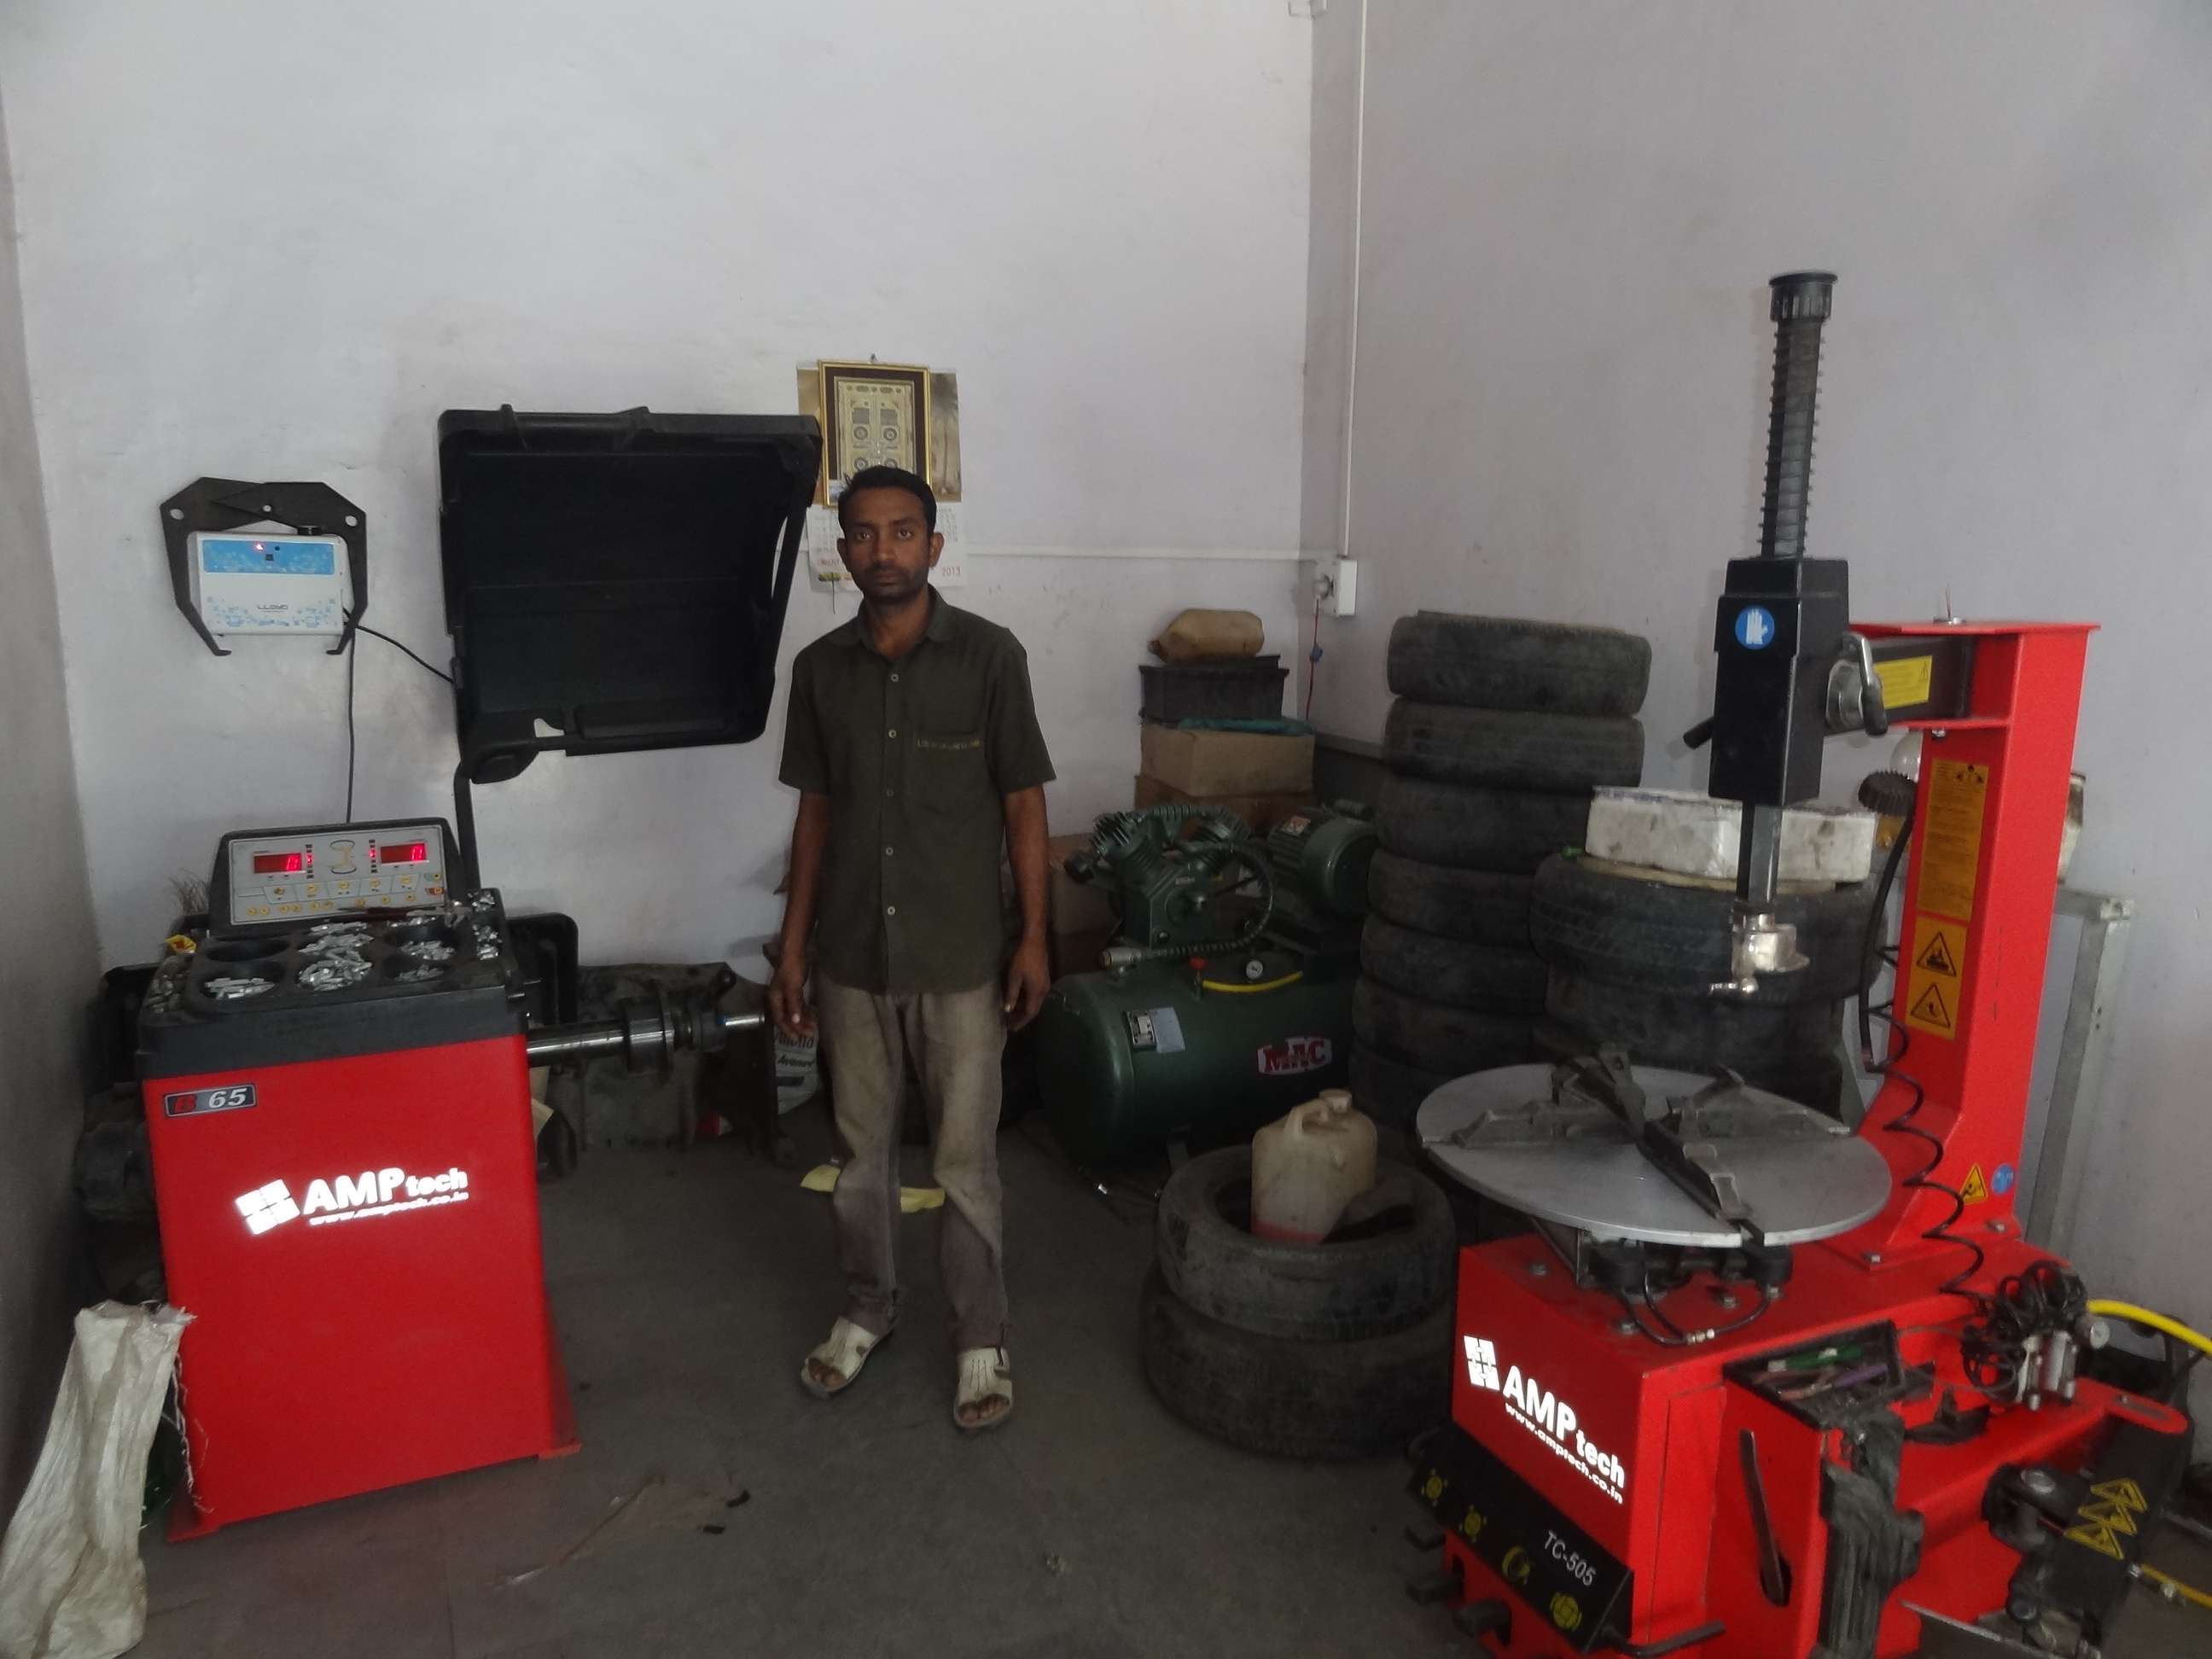 aurangabad irfan customer